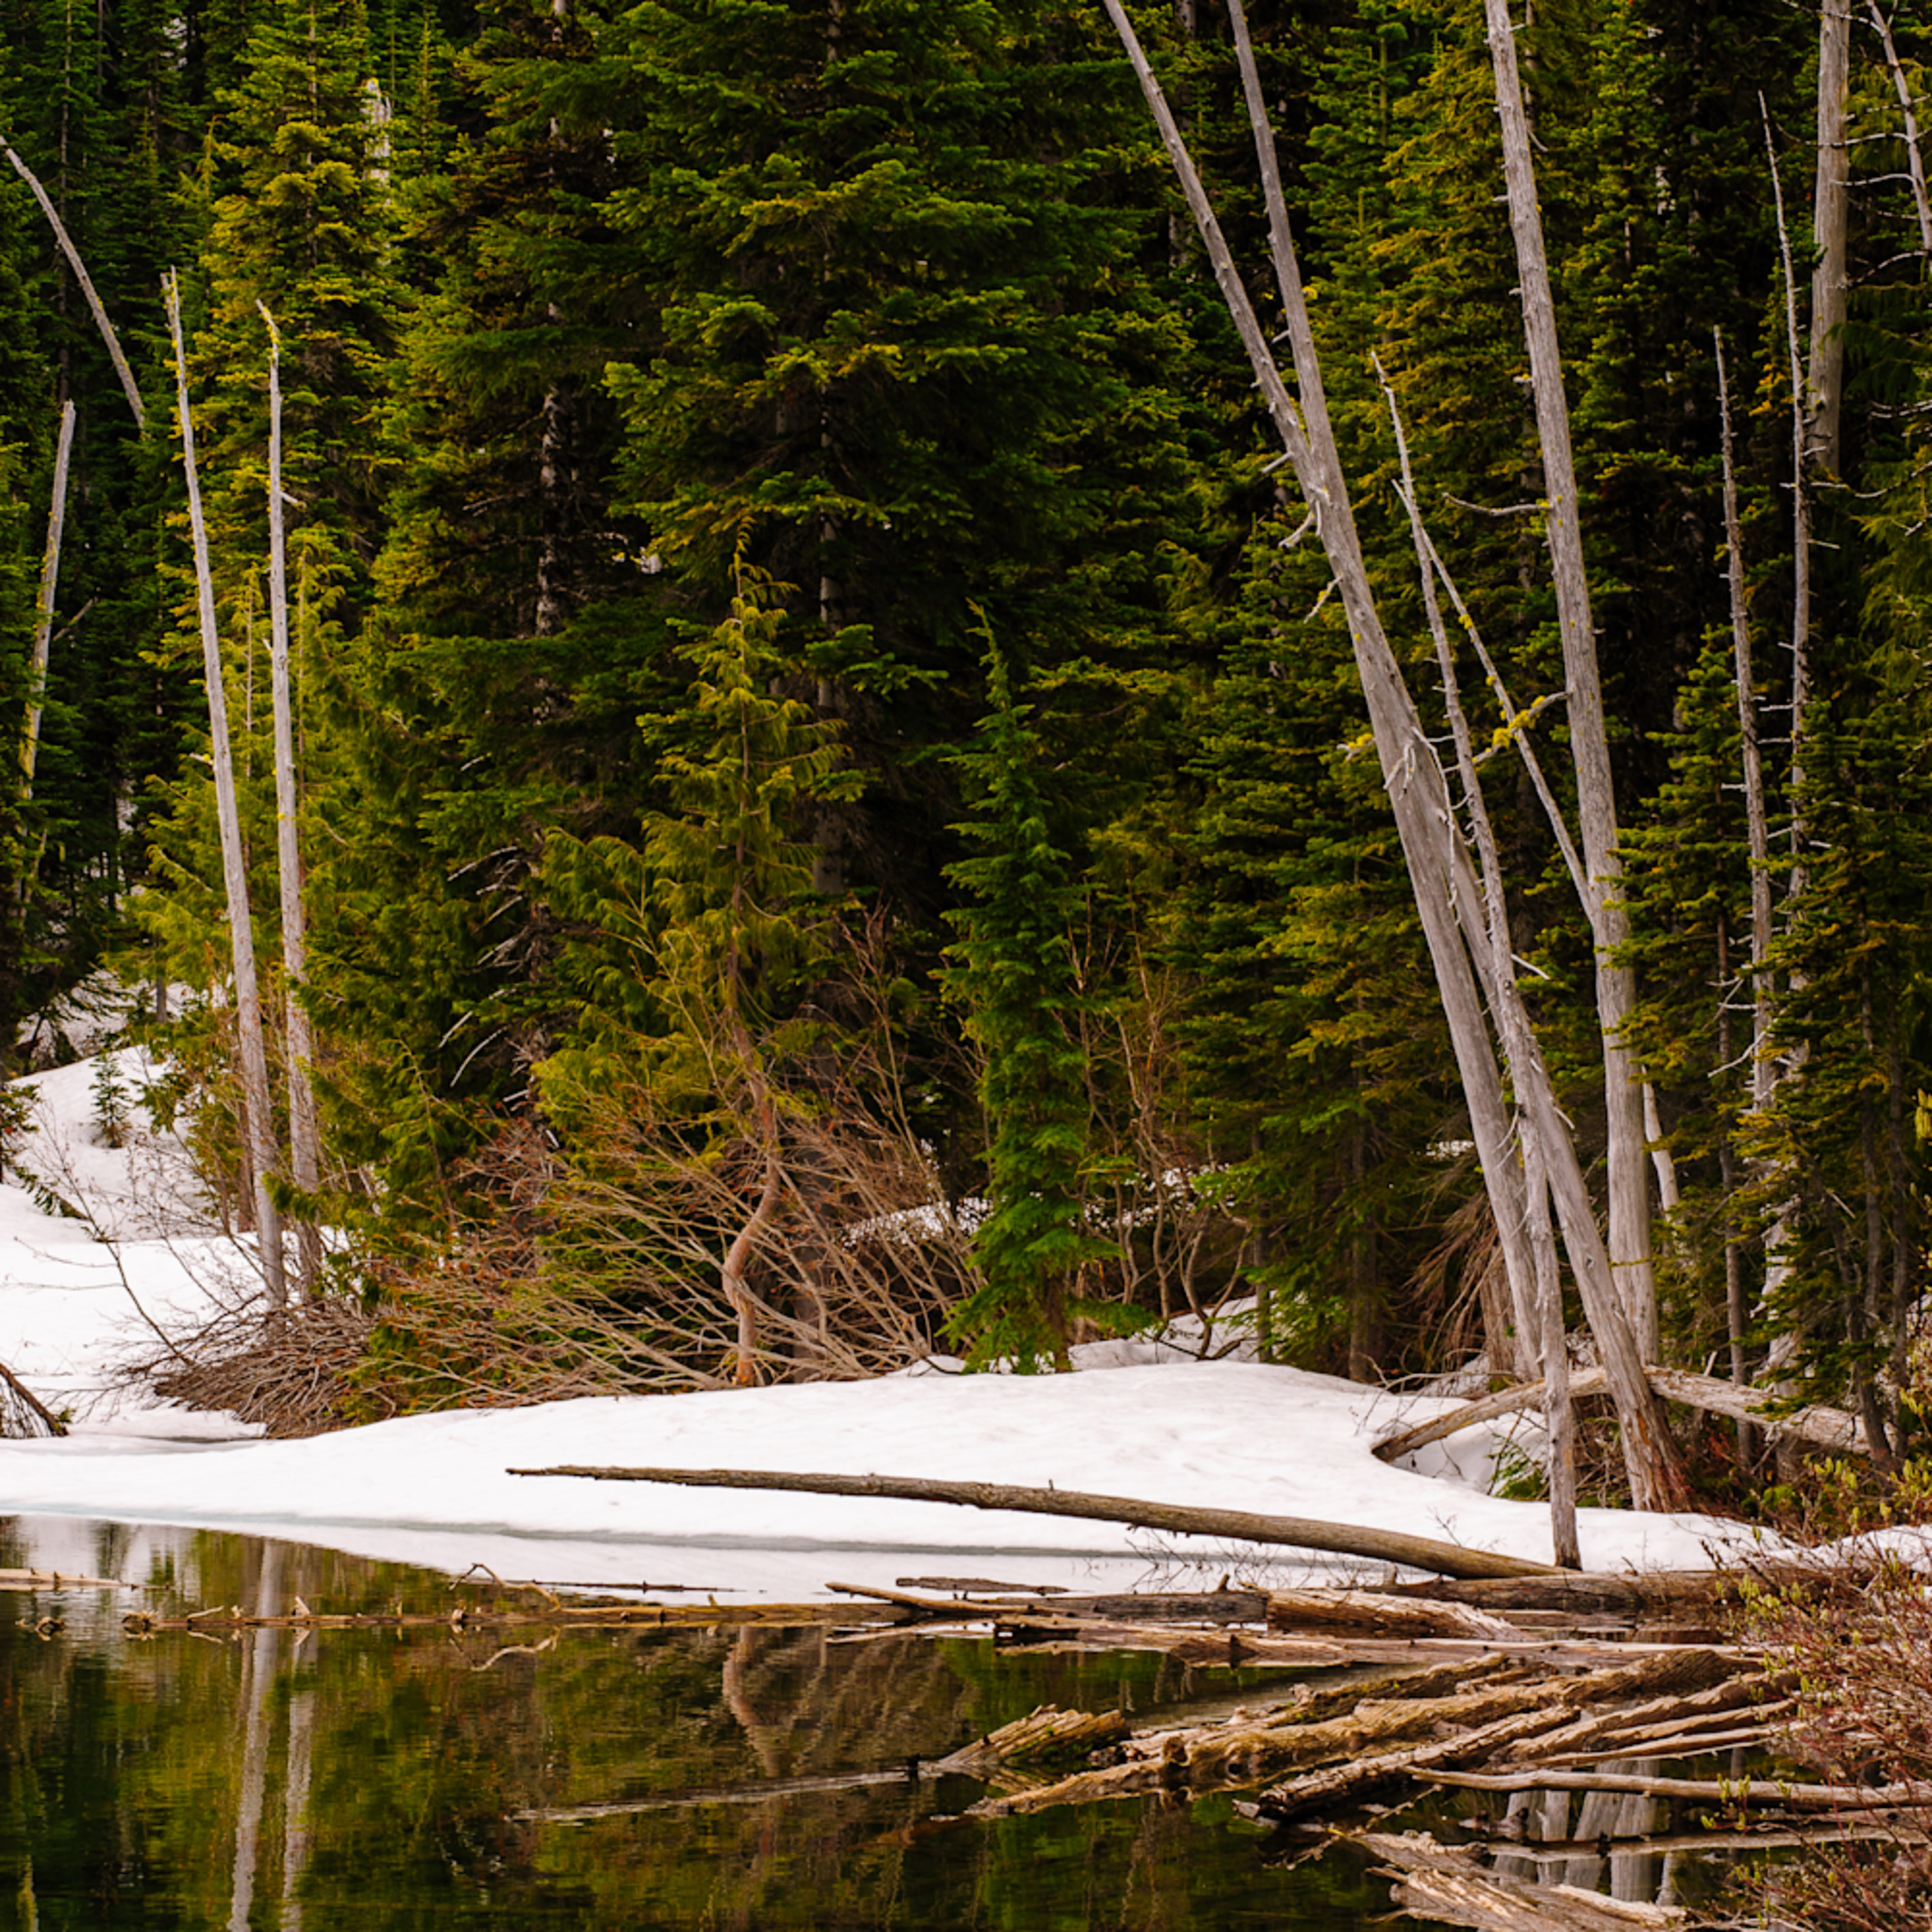 Early spring forest crystal lake mt rainier wa 2016 ibzxrl